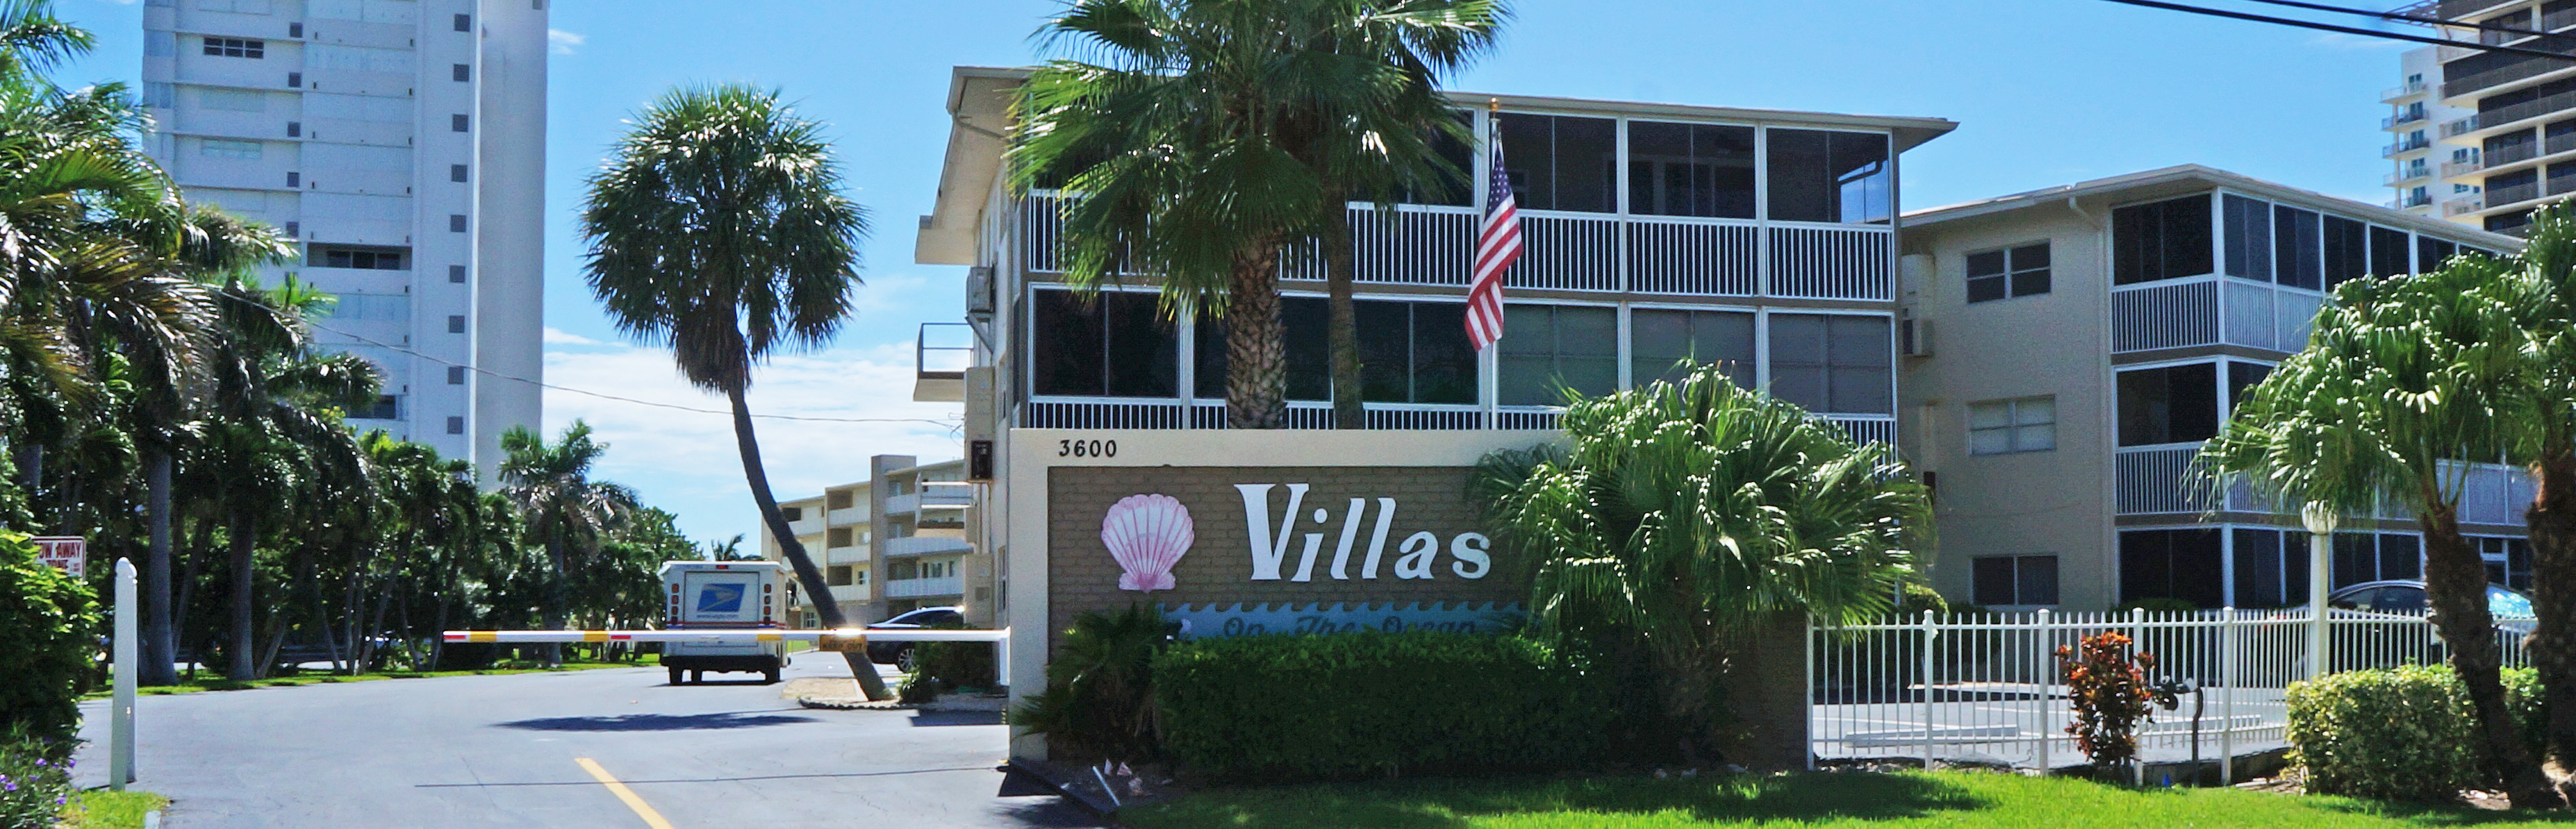 Villas on the Ocean - 55+ Singer Island Florida condo community